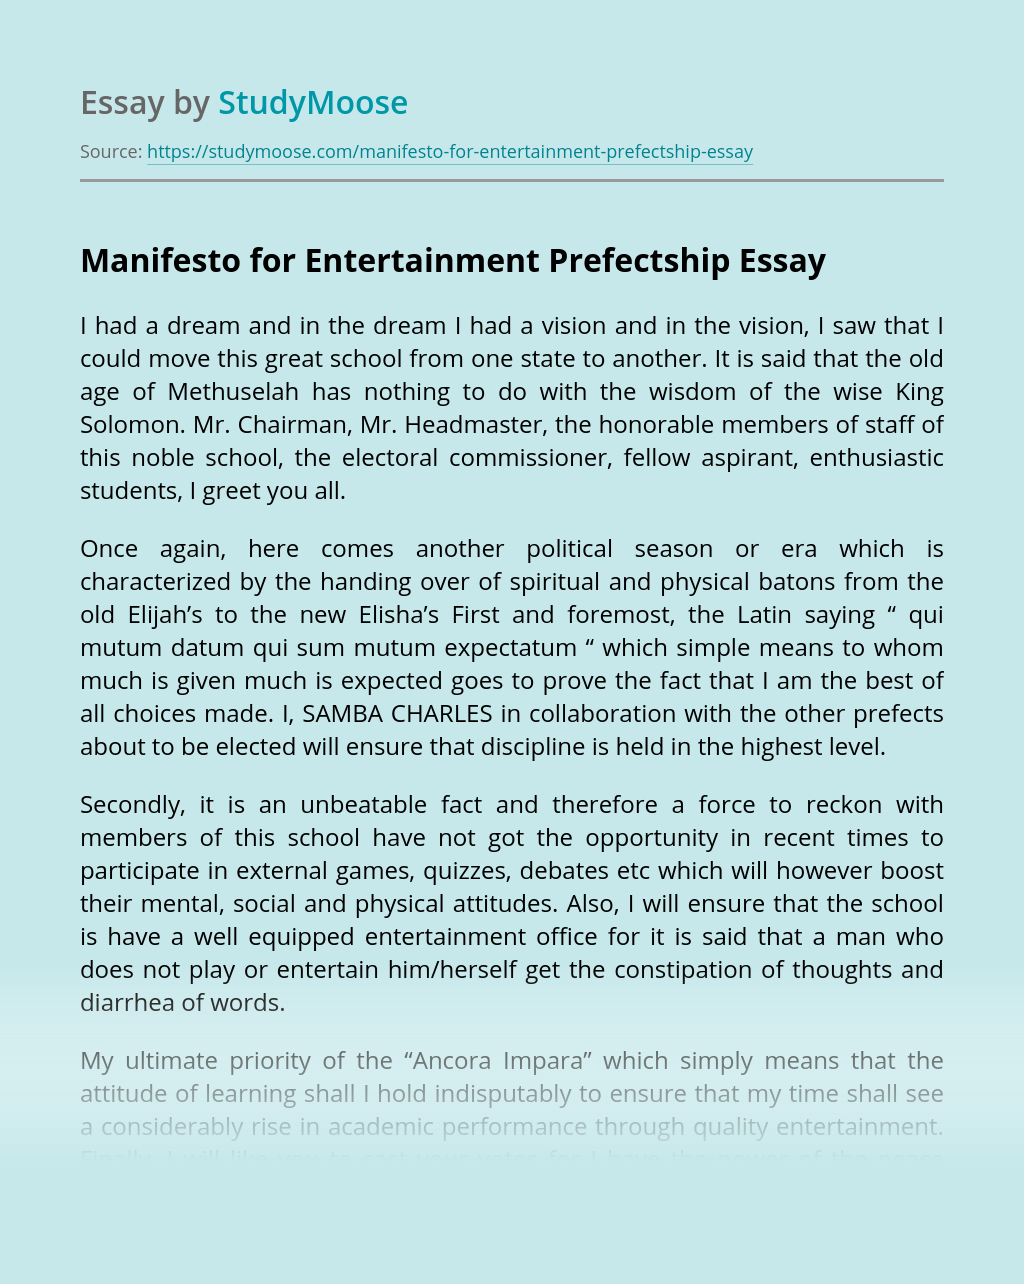 Manifesto for Entertainment Prefectship